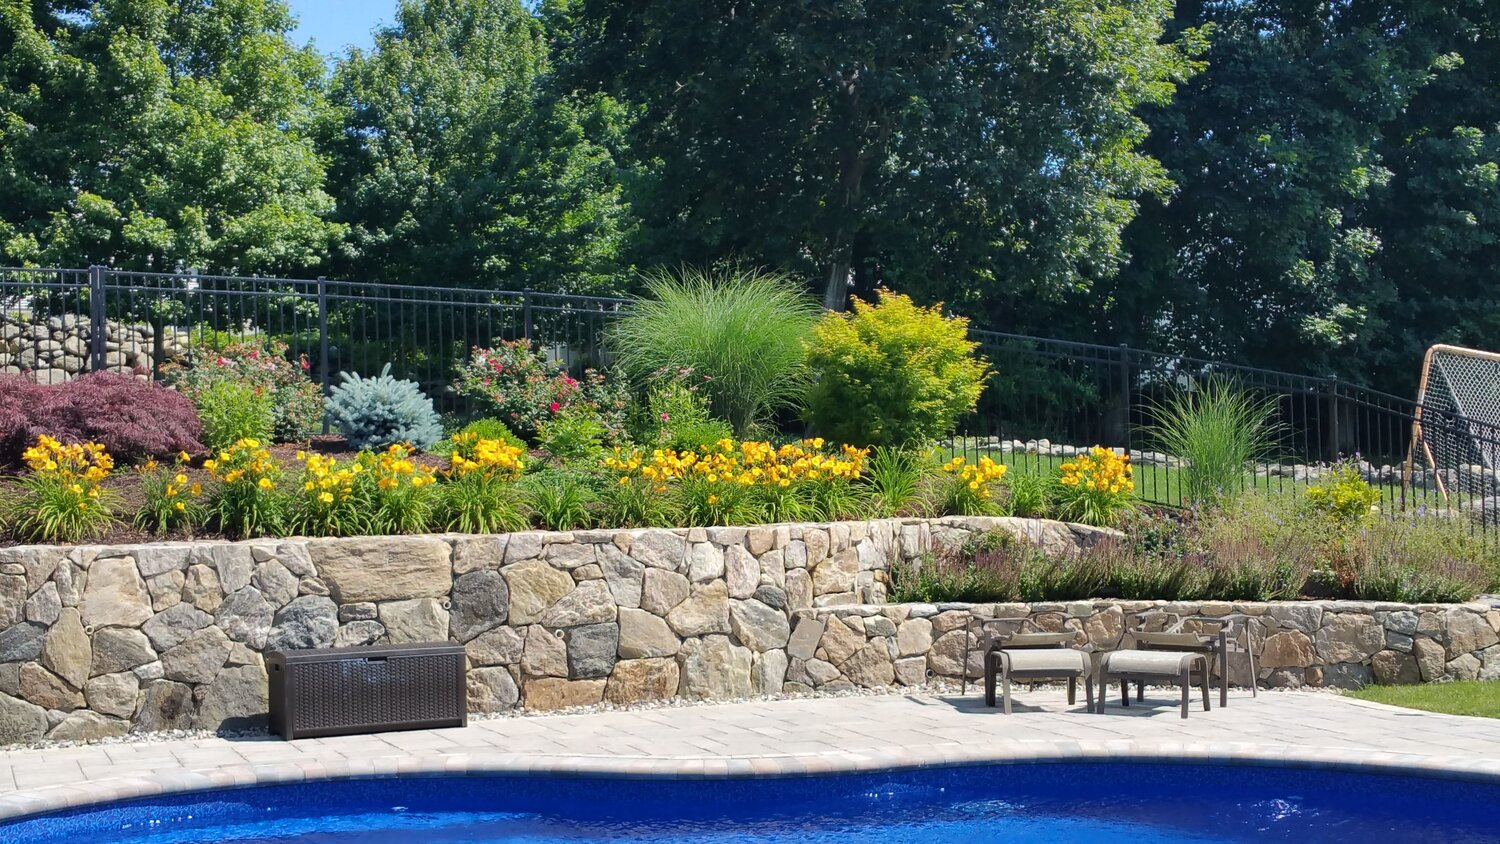 Landscape Design Ideas For Backyards With Natural Surroundings In